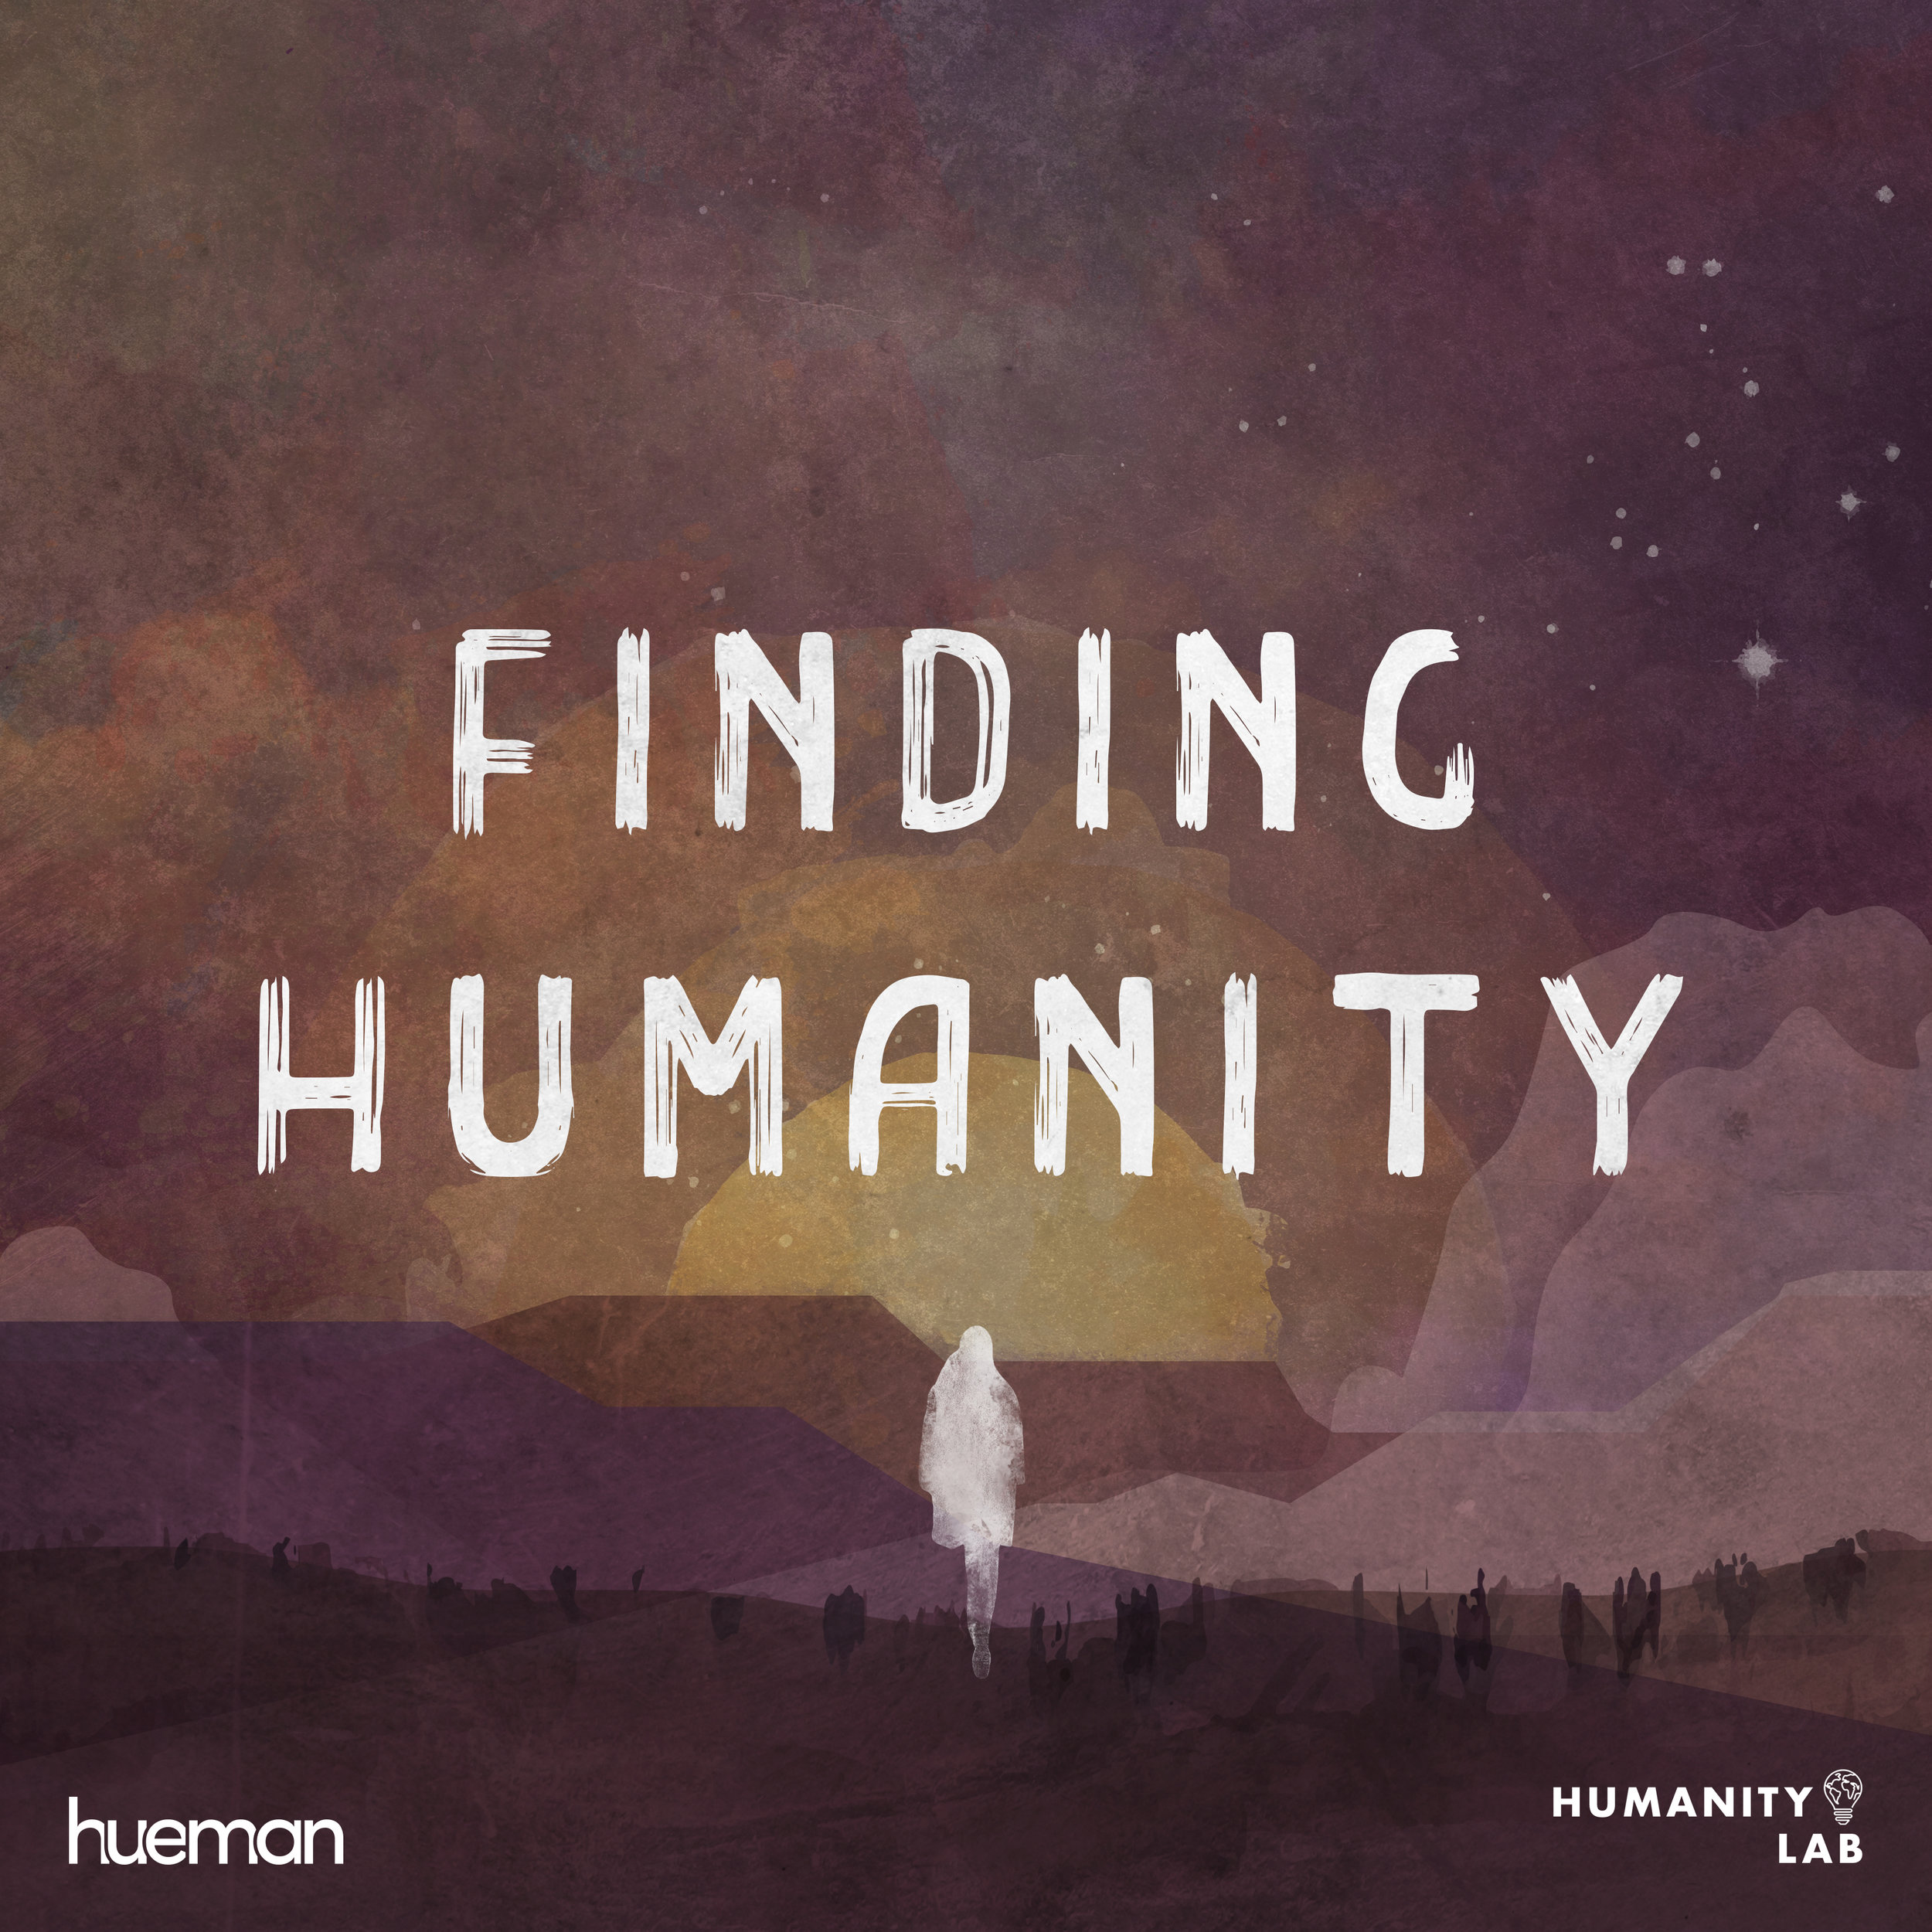 Finding Humanity - Album Art (FINAL).jpg